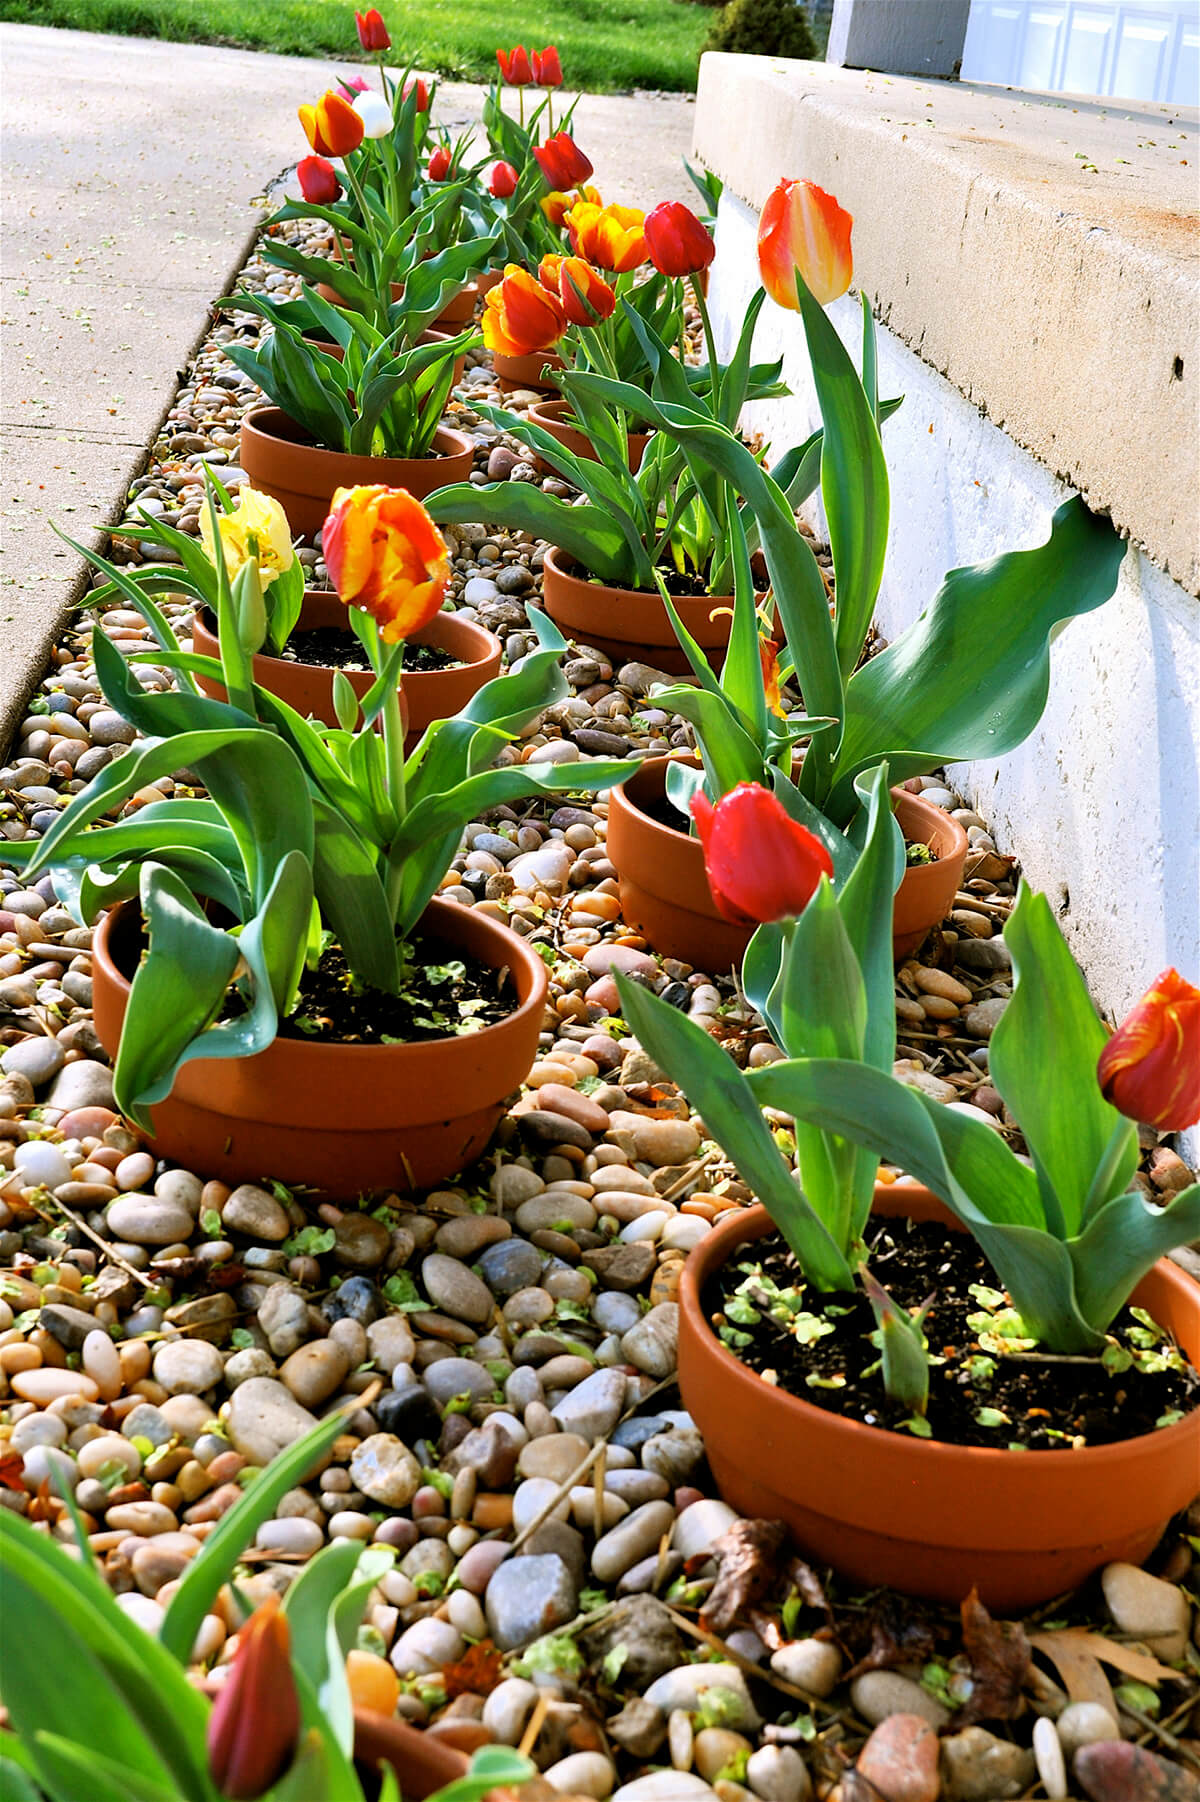 Clay Pot Flower Bed - Get creative with your clay pots moving them from above ground to under ground. Surround your favorite tulips with rocks and the squirrels will be utterly confused on their next visit.